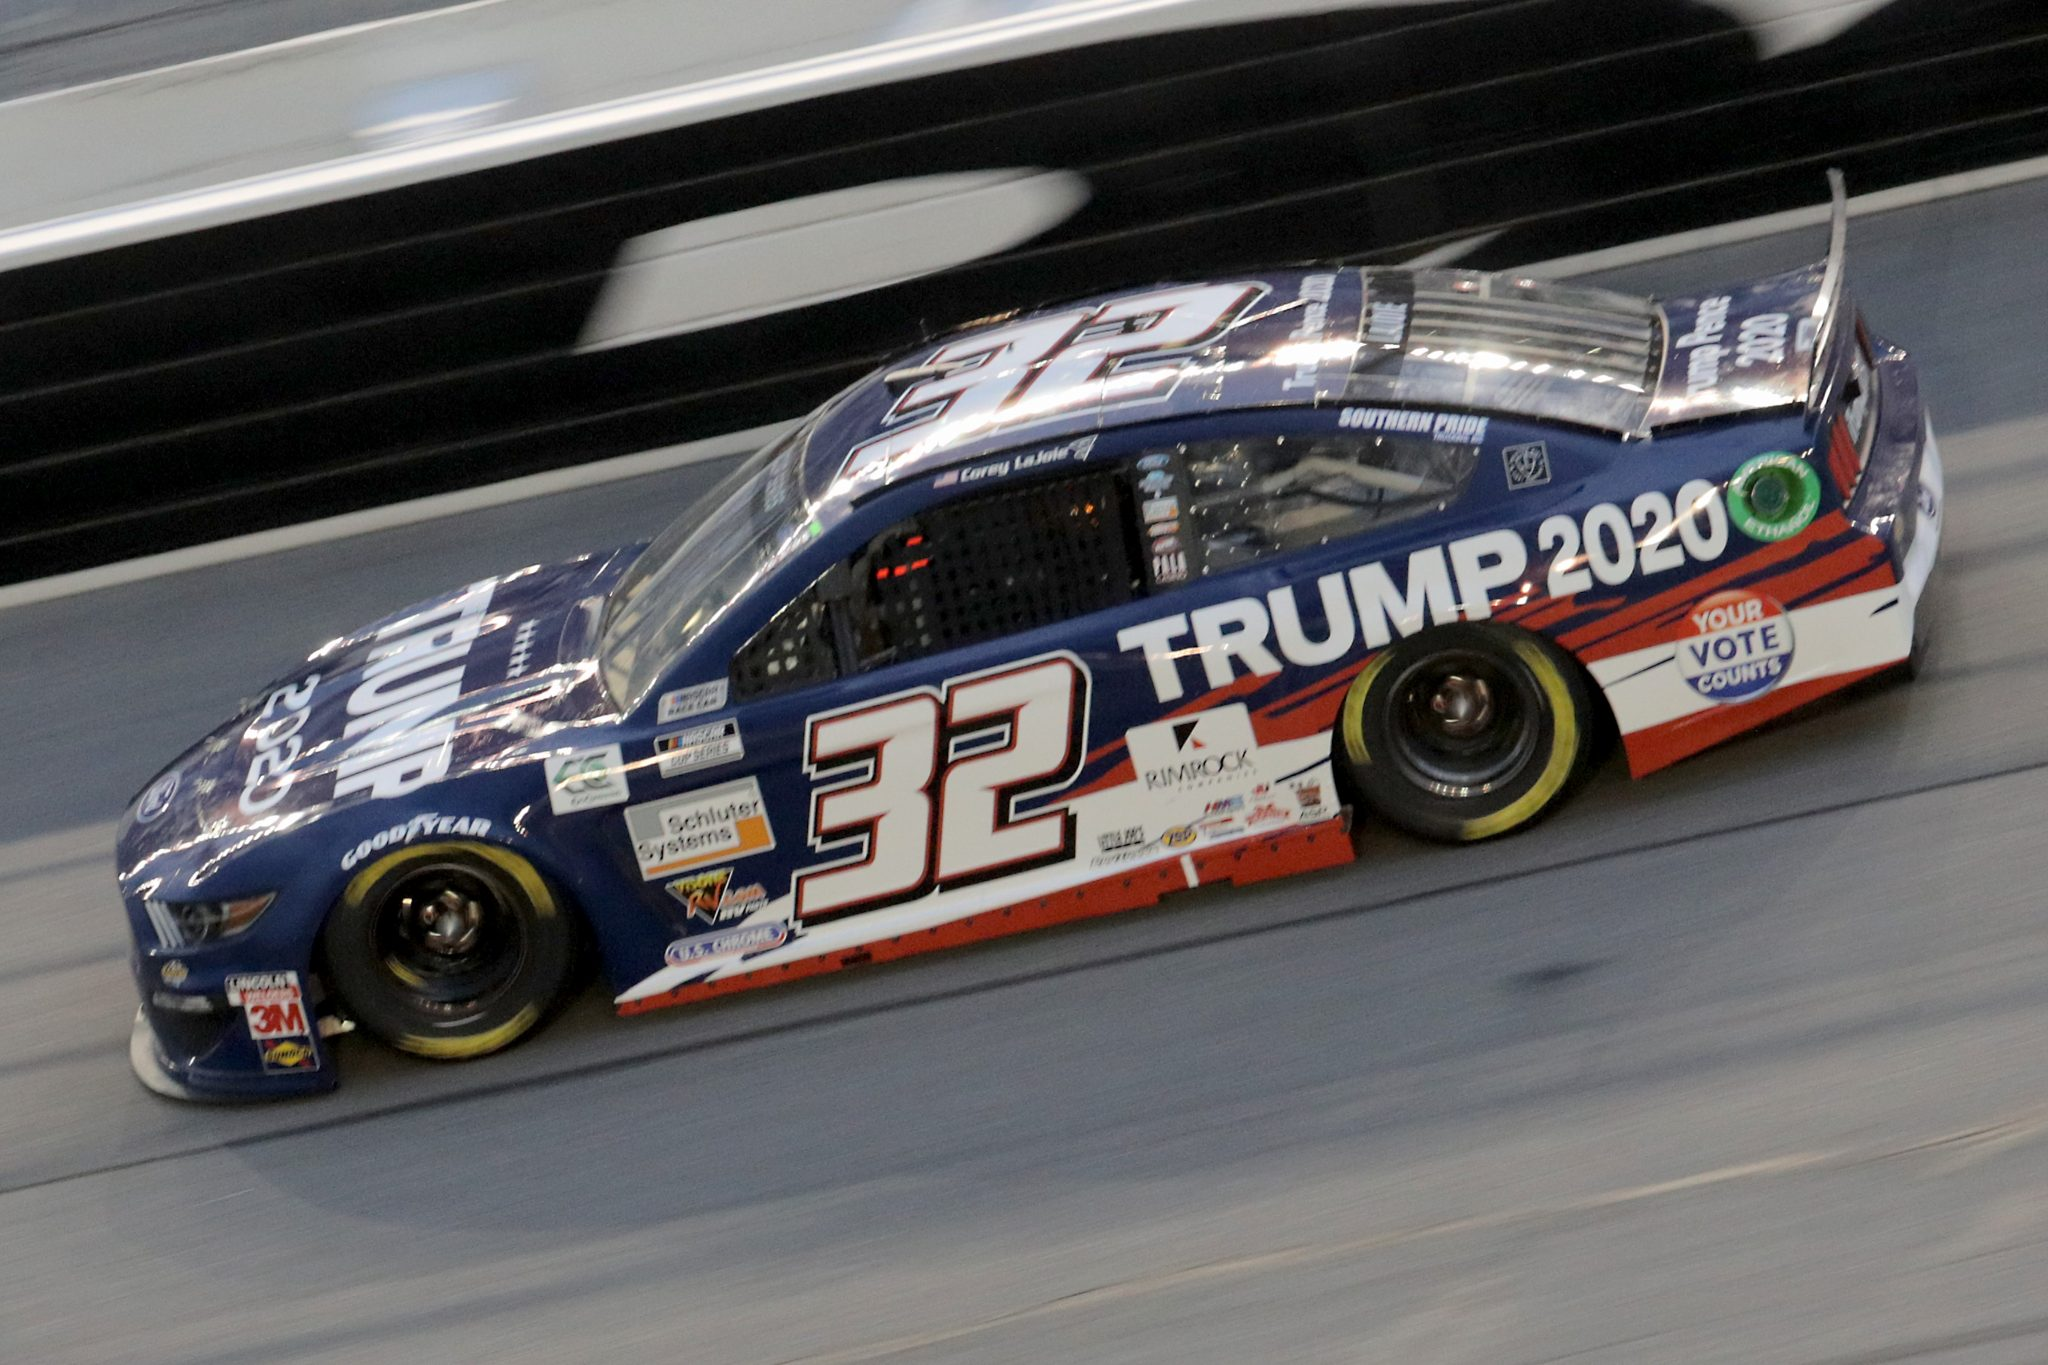 DAYTONA BEACH, FLORIDA - AUGUST 29: Corey LaJoie, driver of the #32 Trump 2020 Ford, drives during the NASCAR Cup Series Coke Zero Sugar 400 at Daytona International Speedway on August 29, 2020 in Daytona Beach, Florida. (Photo by Chris Graythen/Getty Images) | Getty Images